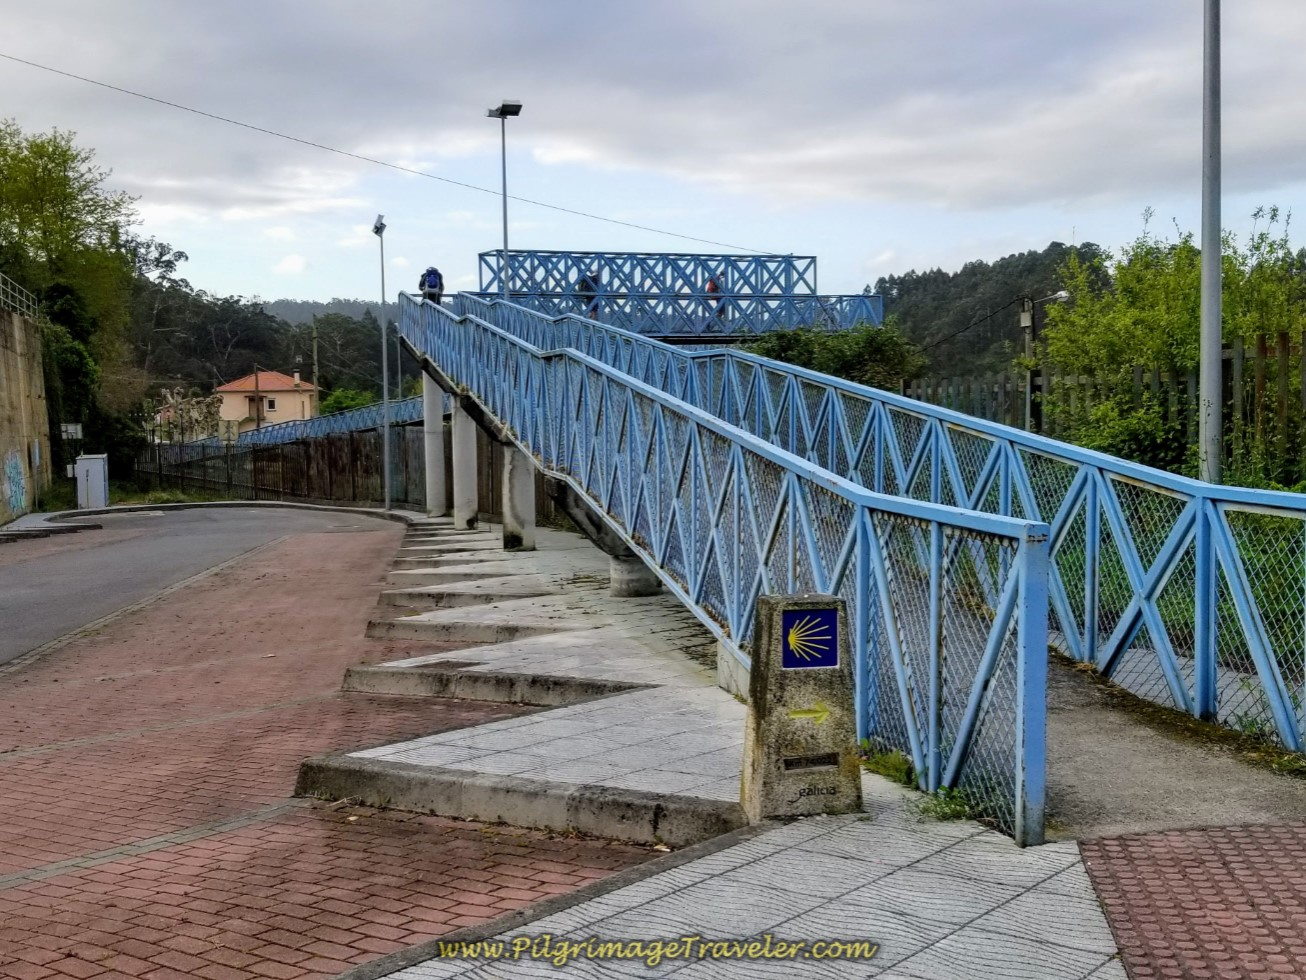 Camino Takes the Blue Pedestrian Bridge Across the Railroad tracks on day four of the Camino Inglés